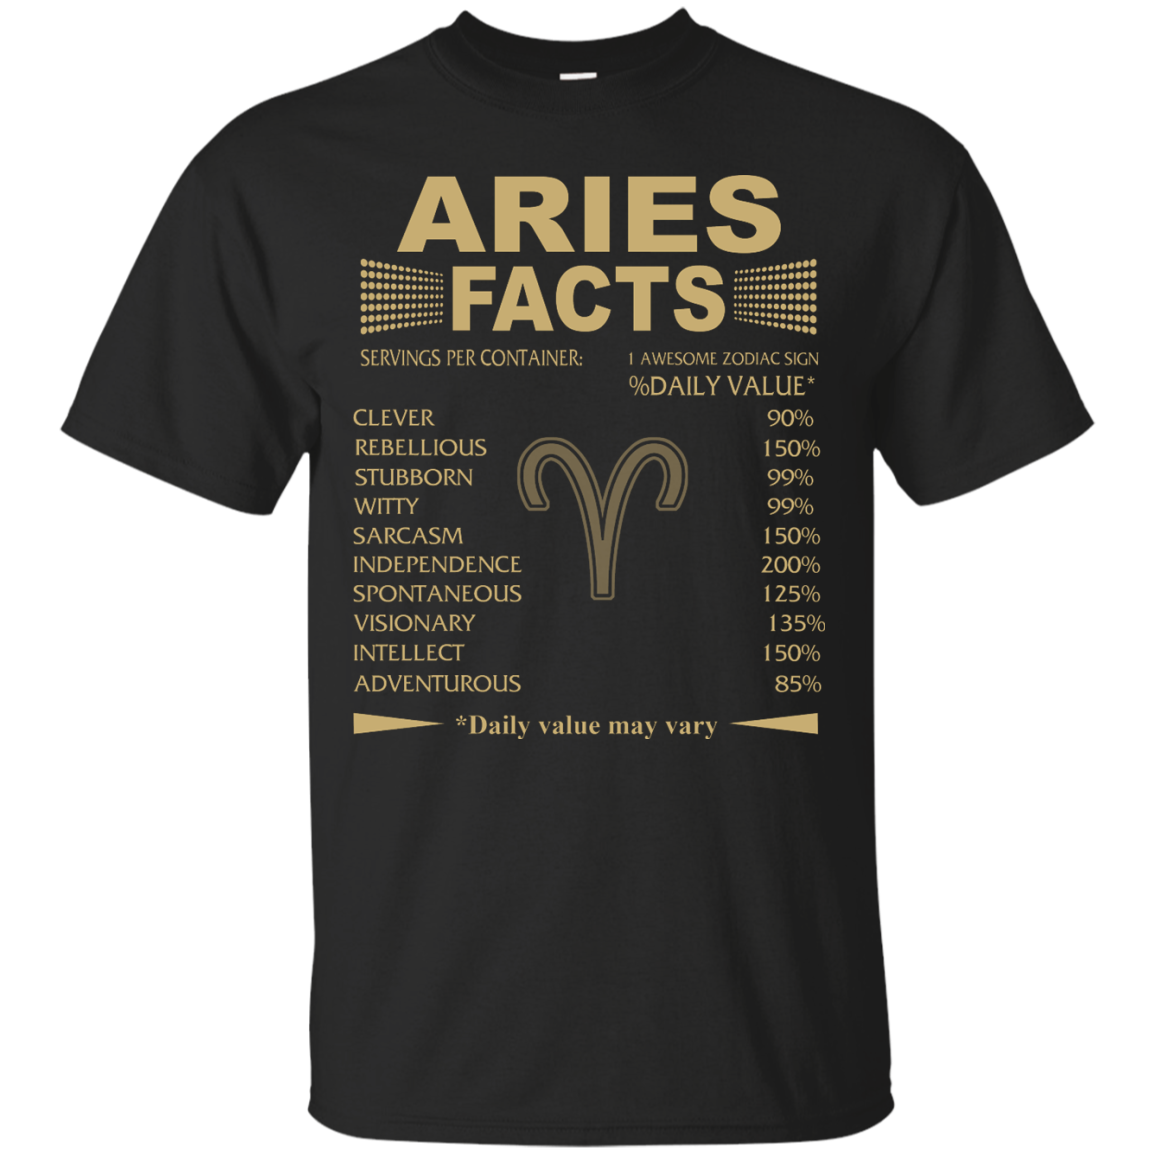 Aries Facts T shirt, Interesting Facts About Aries Zodiac